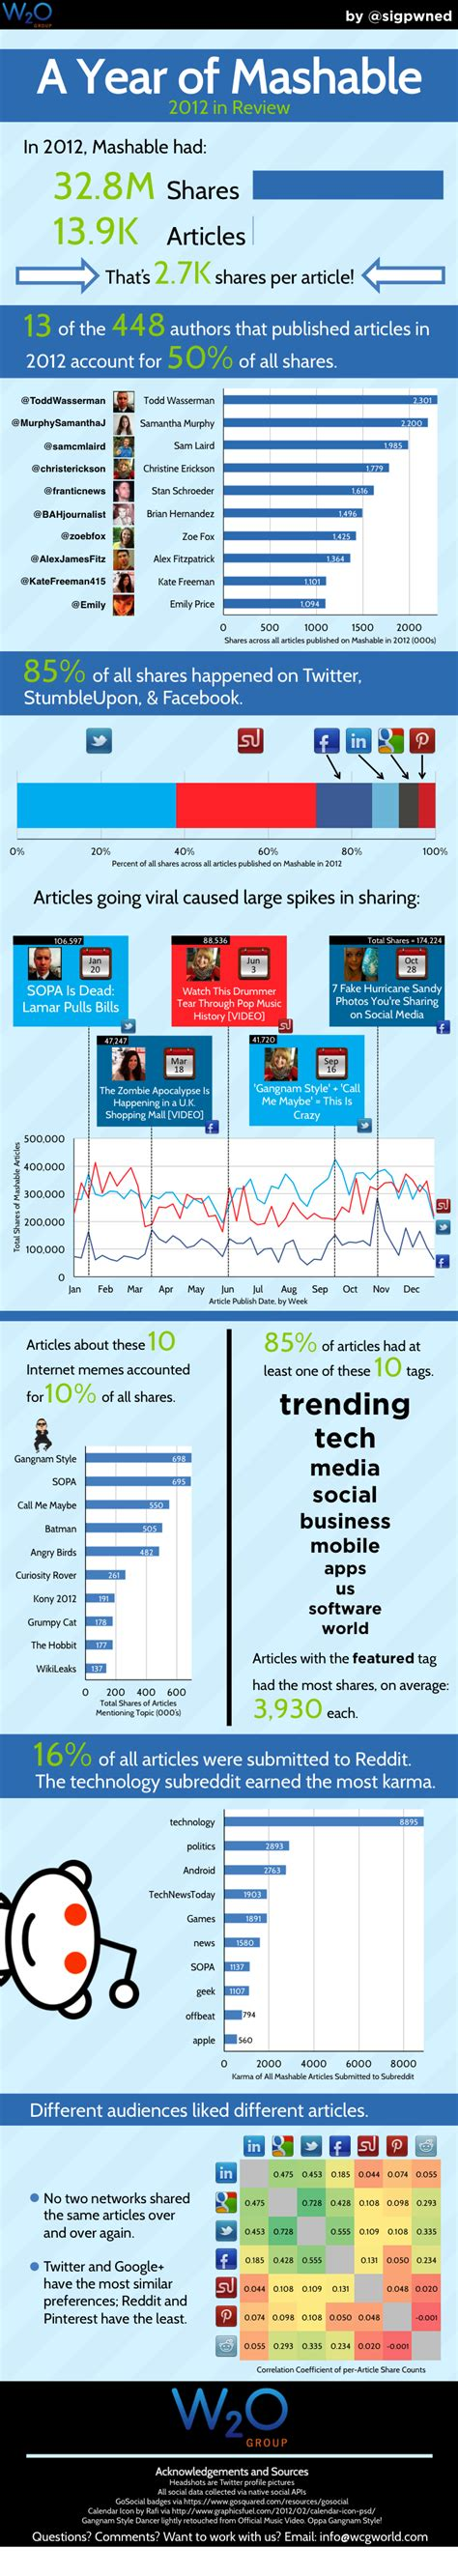 a year of mashable 2012 infographic common sense